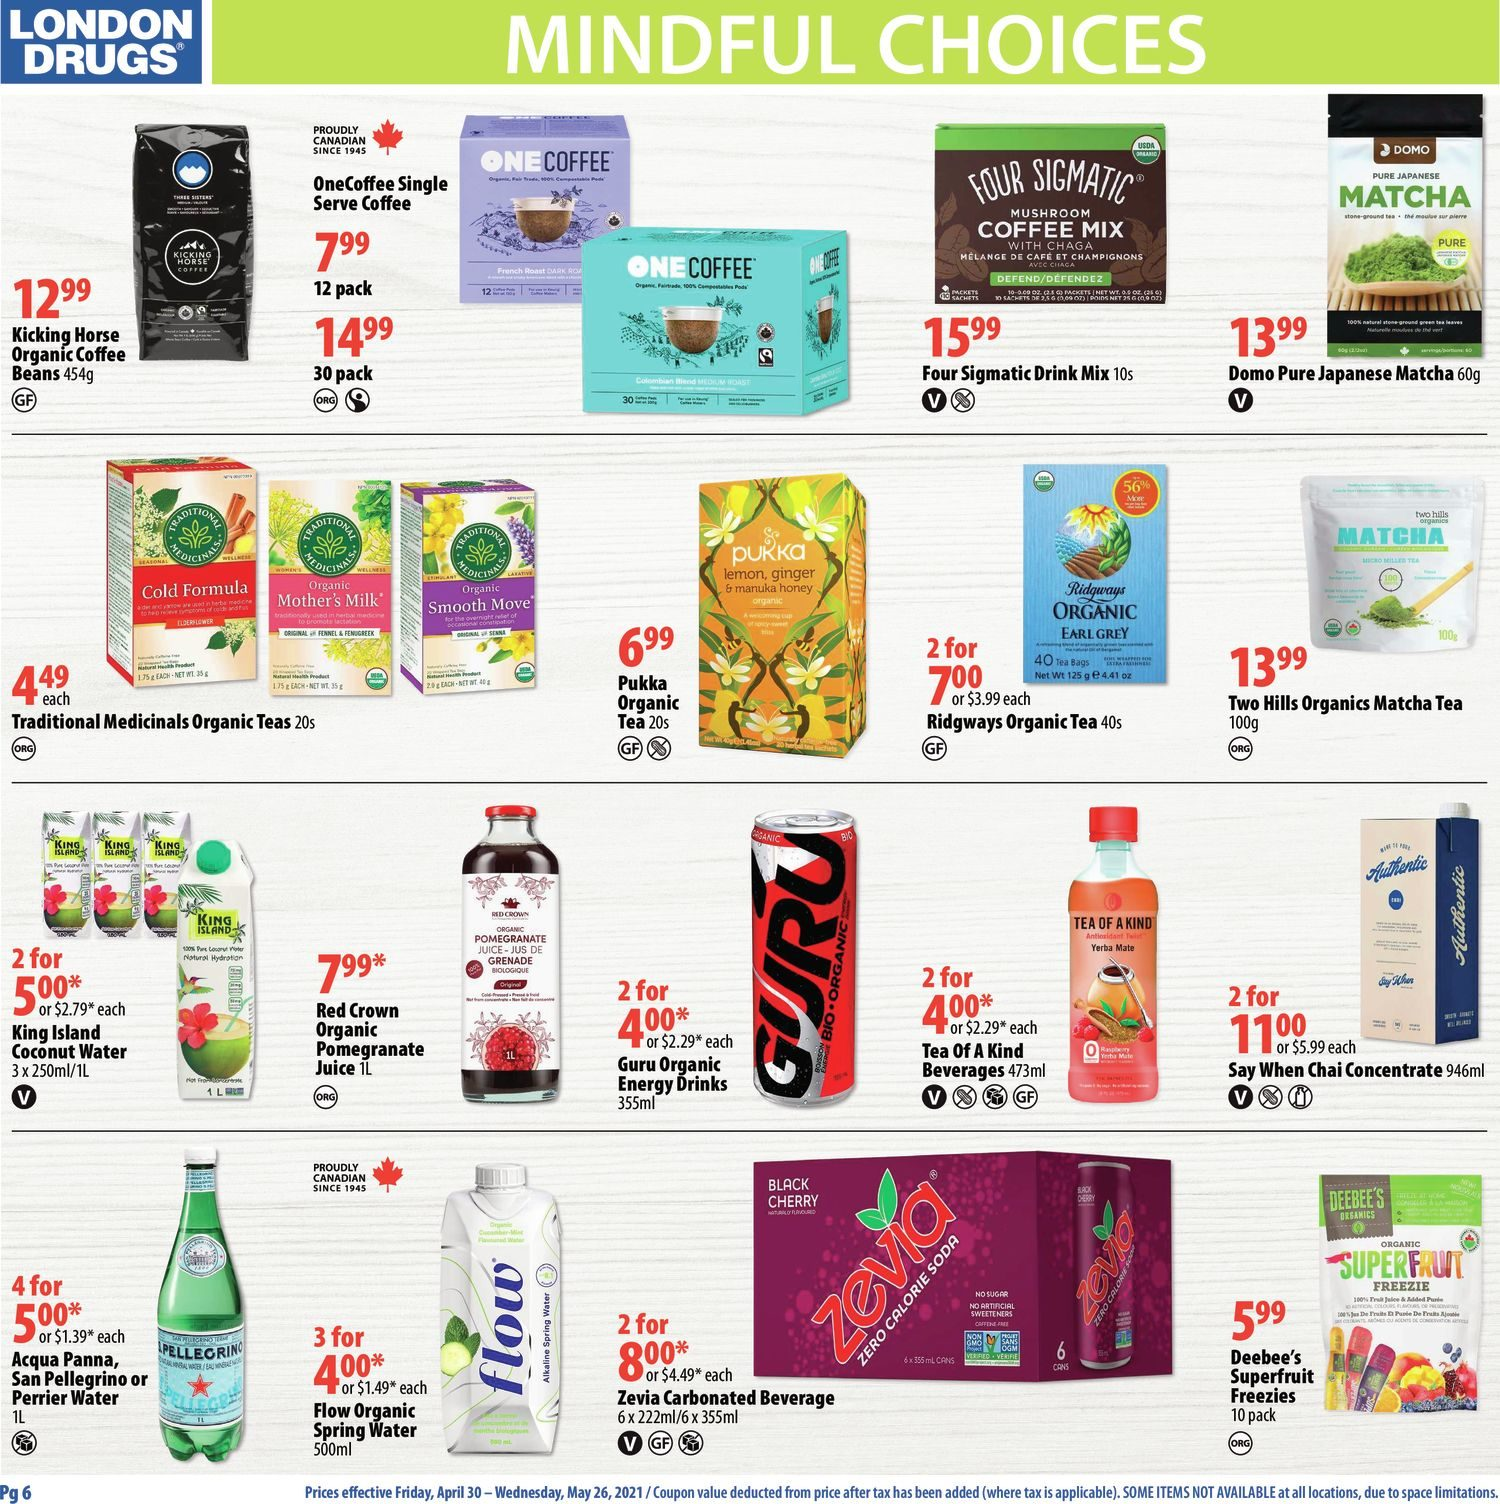 London Drugs - Mindful Choices - Choices To Support Your Lifestyle - Page 6